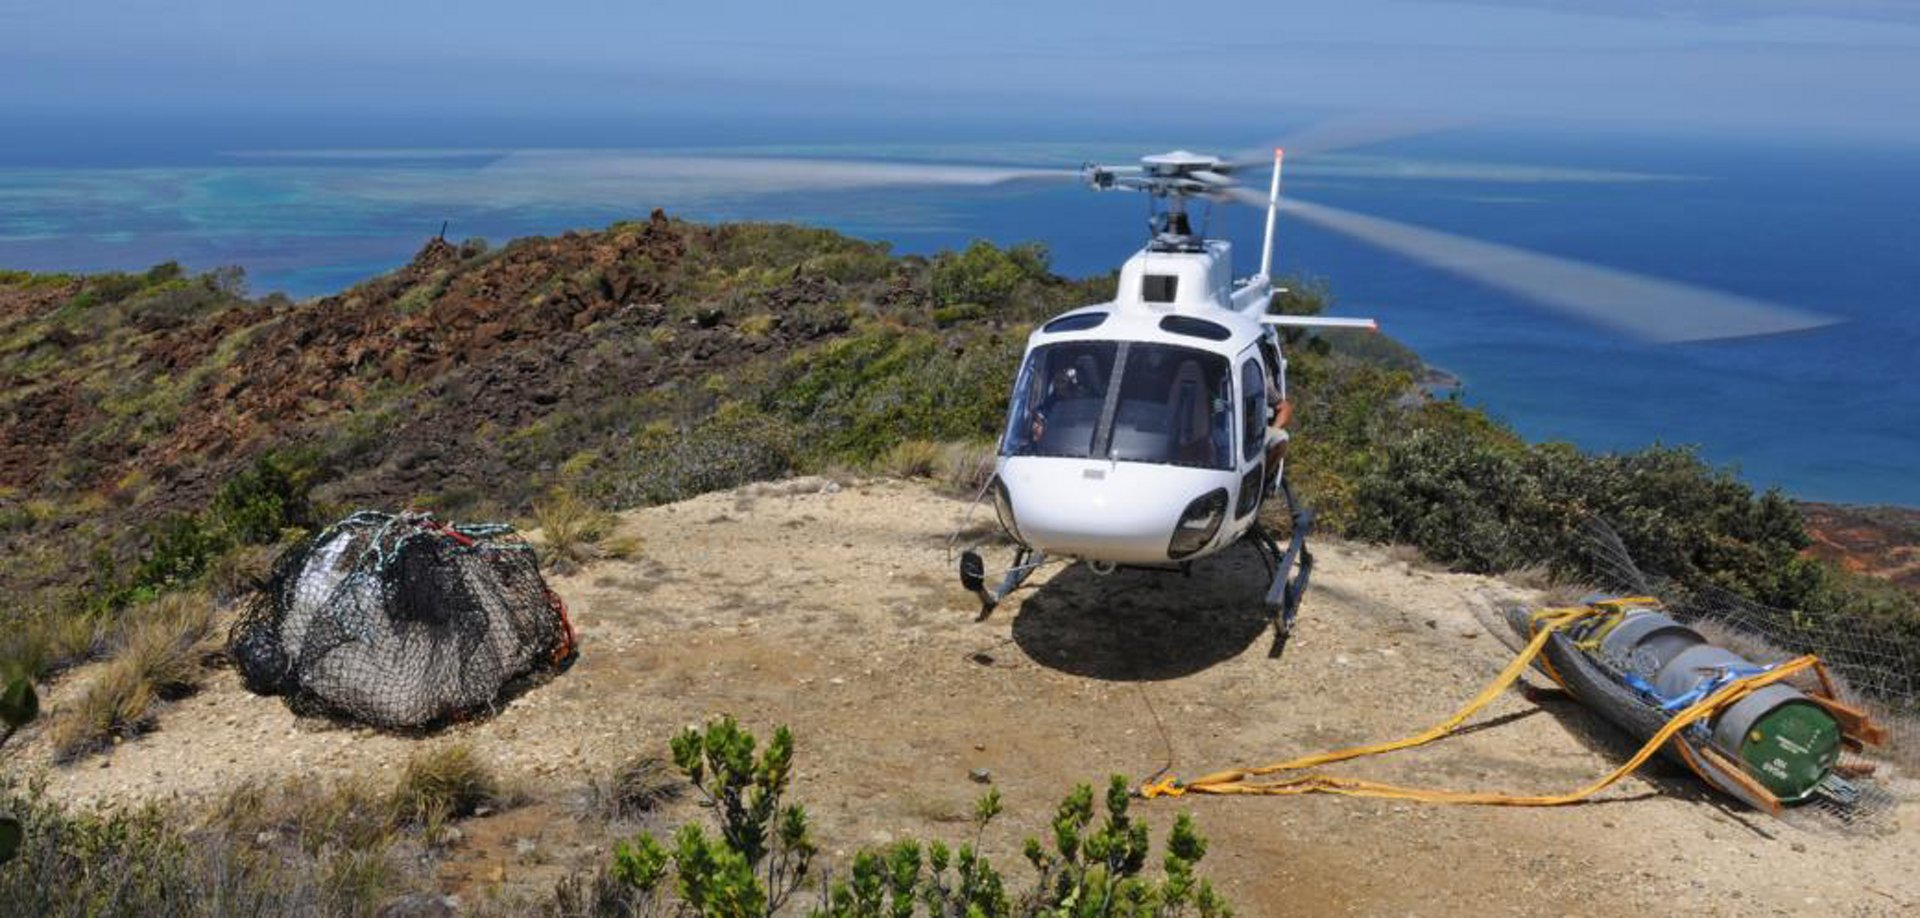 HELICAL's H125 for utility operations